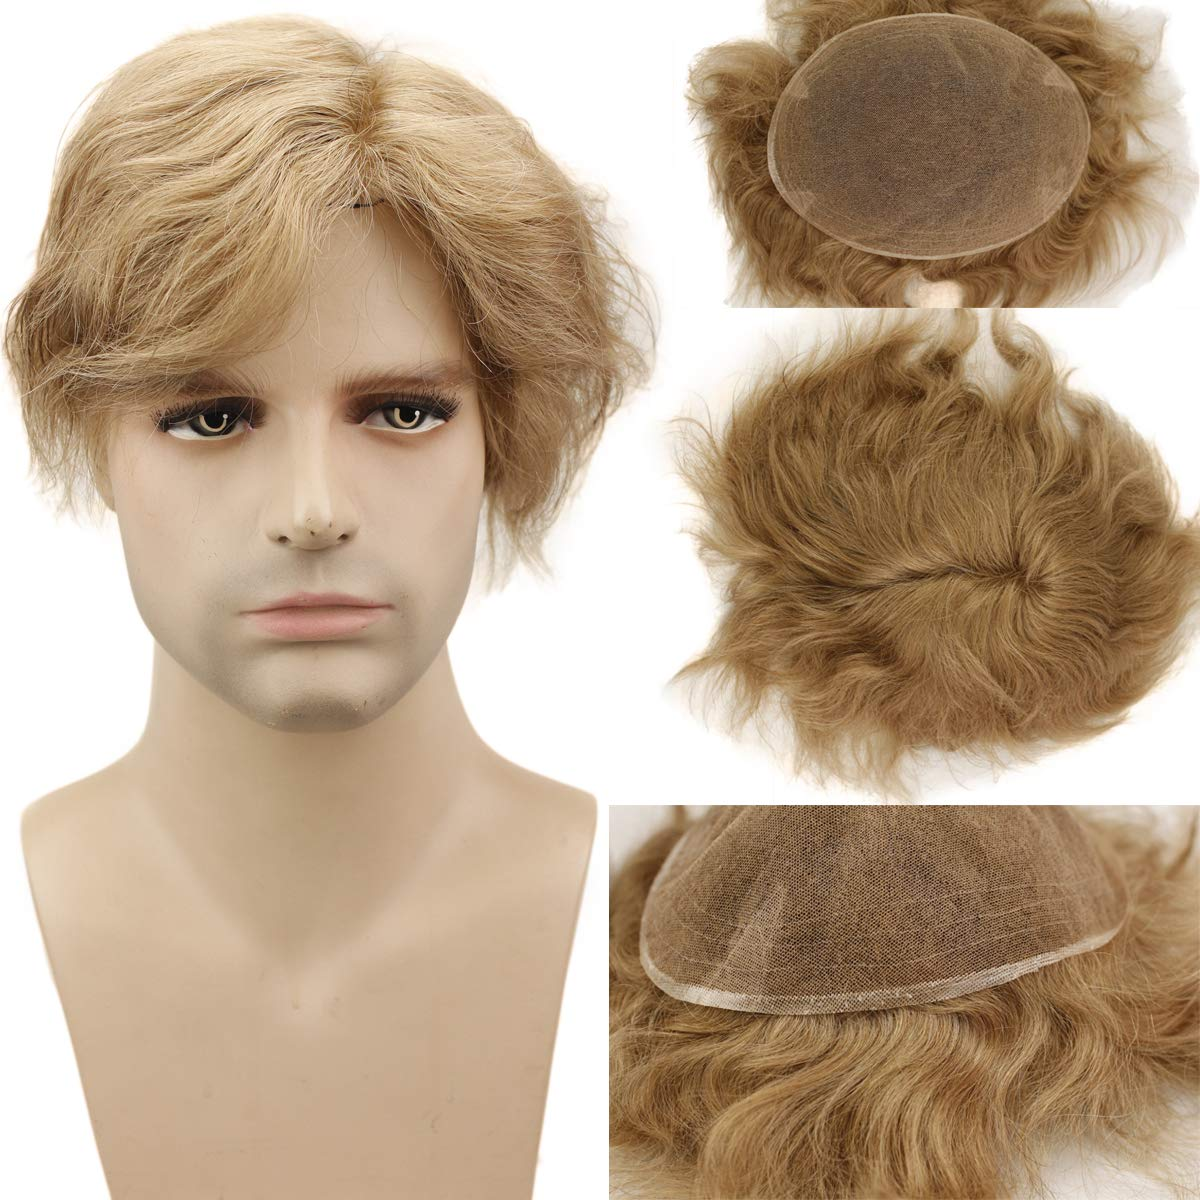 """Dreambeauty Full Swiss Lace Base Toupee for Men European Virgin Human Hair Replacement System for Men 10x8"""" Human Hairpieces Soft Thin Super Skin Men's Toupee (#21 Ash Blonde)"""